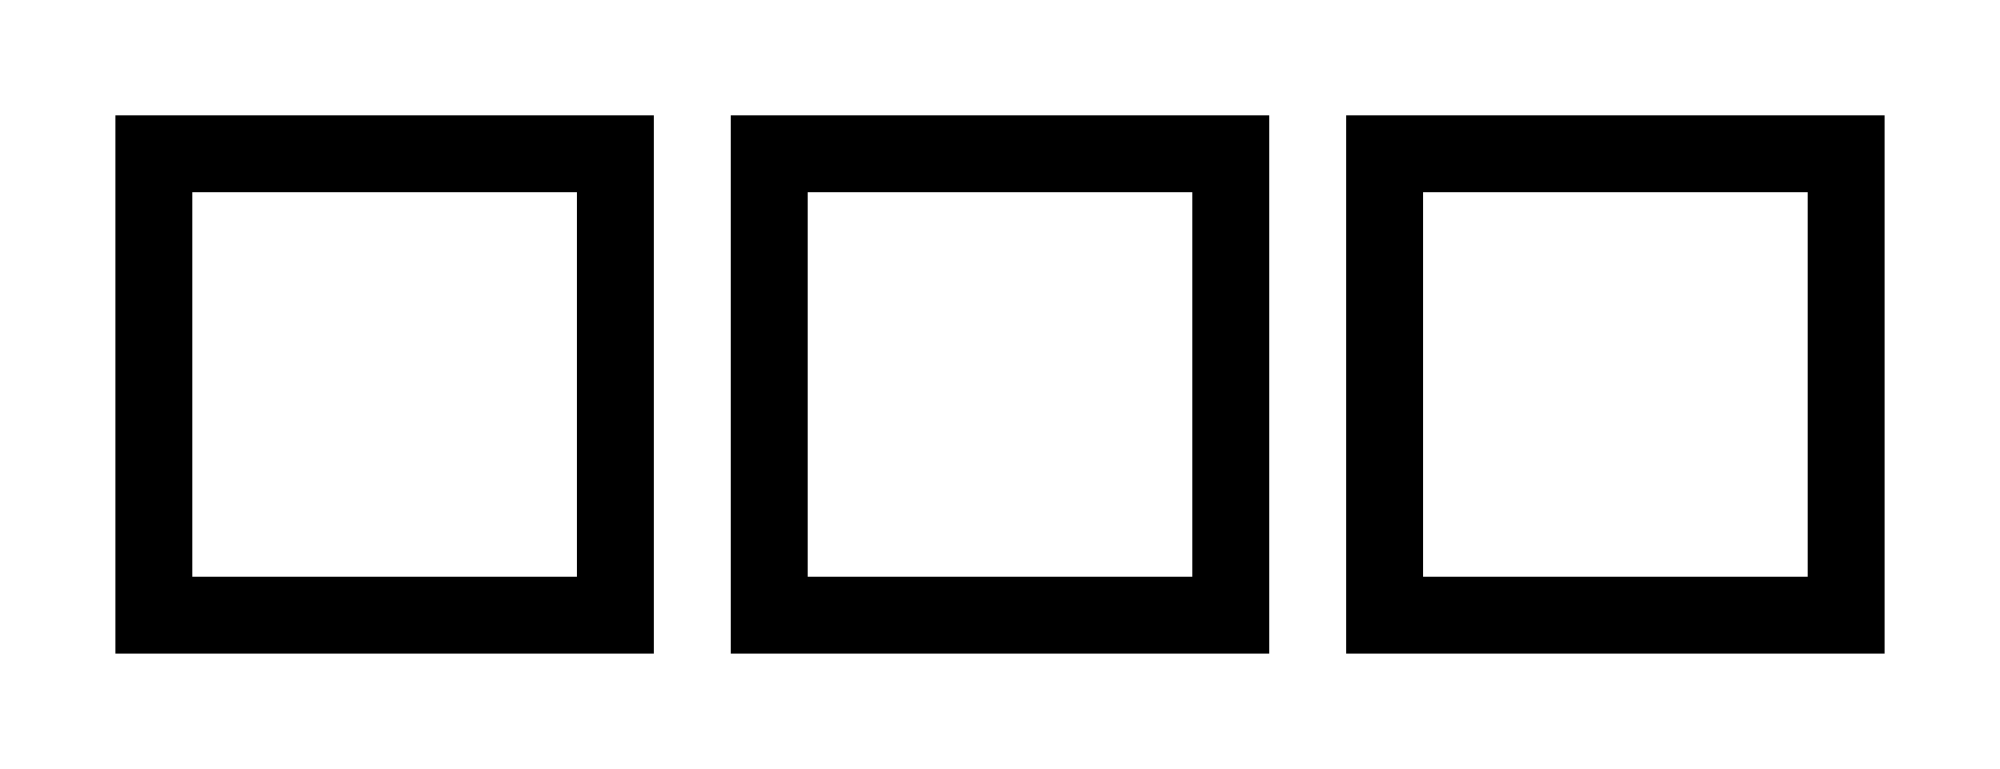 Squares clipart square outline Svg Open Outline File:Three Wikimedia